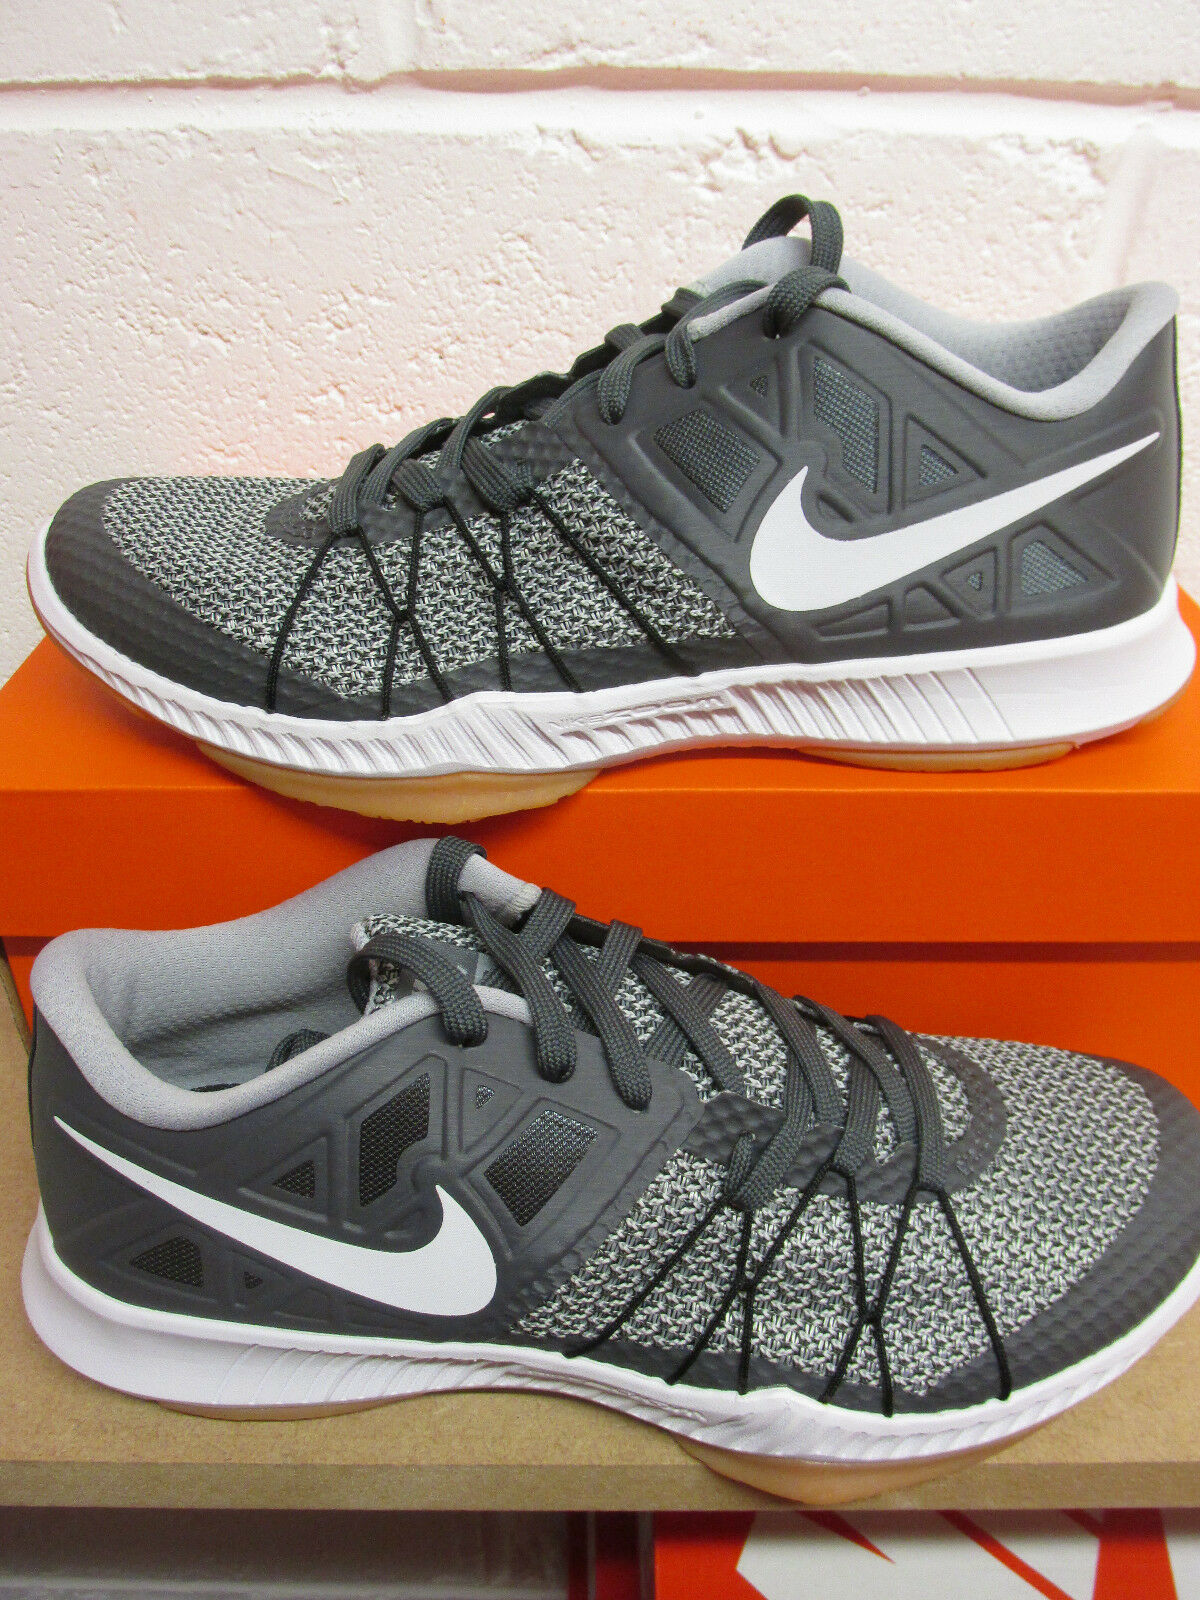 Nike Mens Zoom Train Incredibly Fast Mens Nike Running Trainers 844803 003 Sneakers Shoes 1b5e88